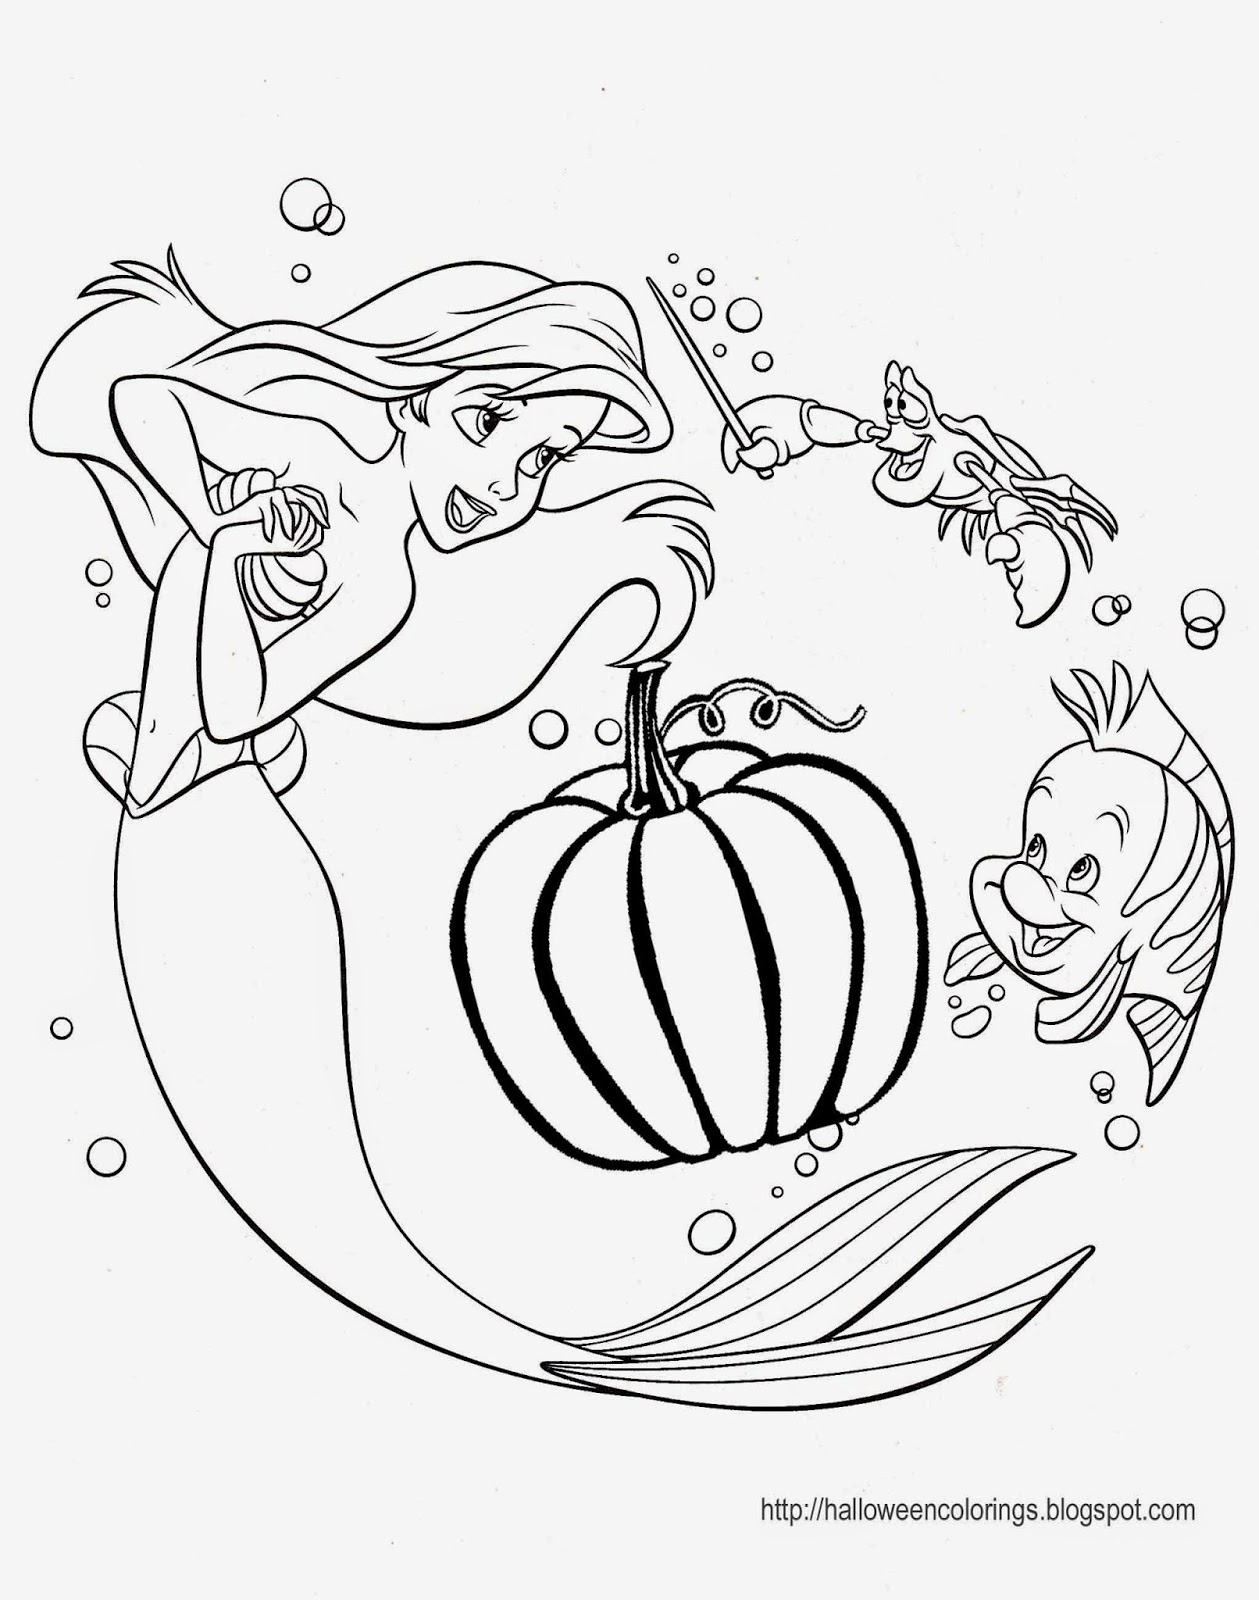 DISNEY COLORING PAGES: HALLOWEEN COLORING PAGES